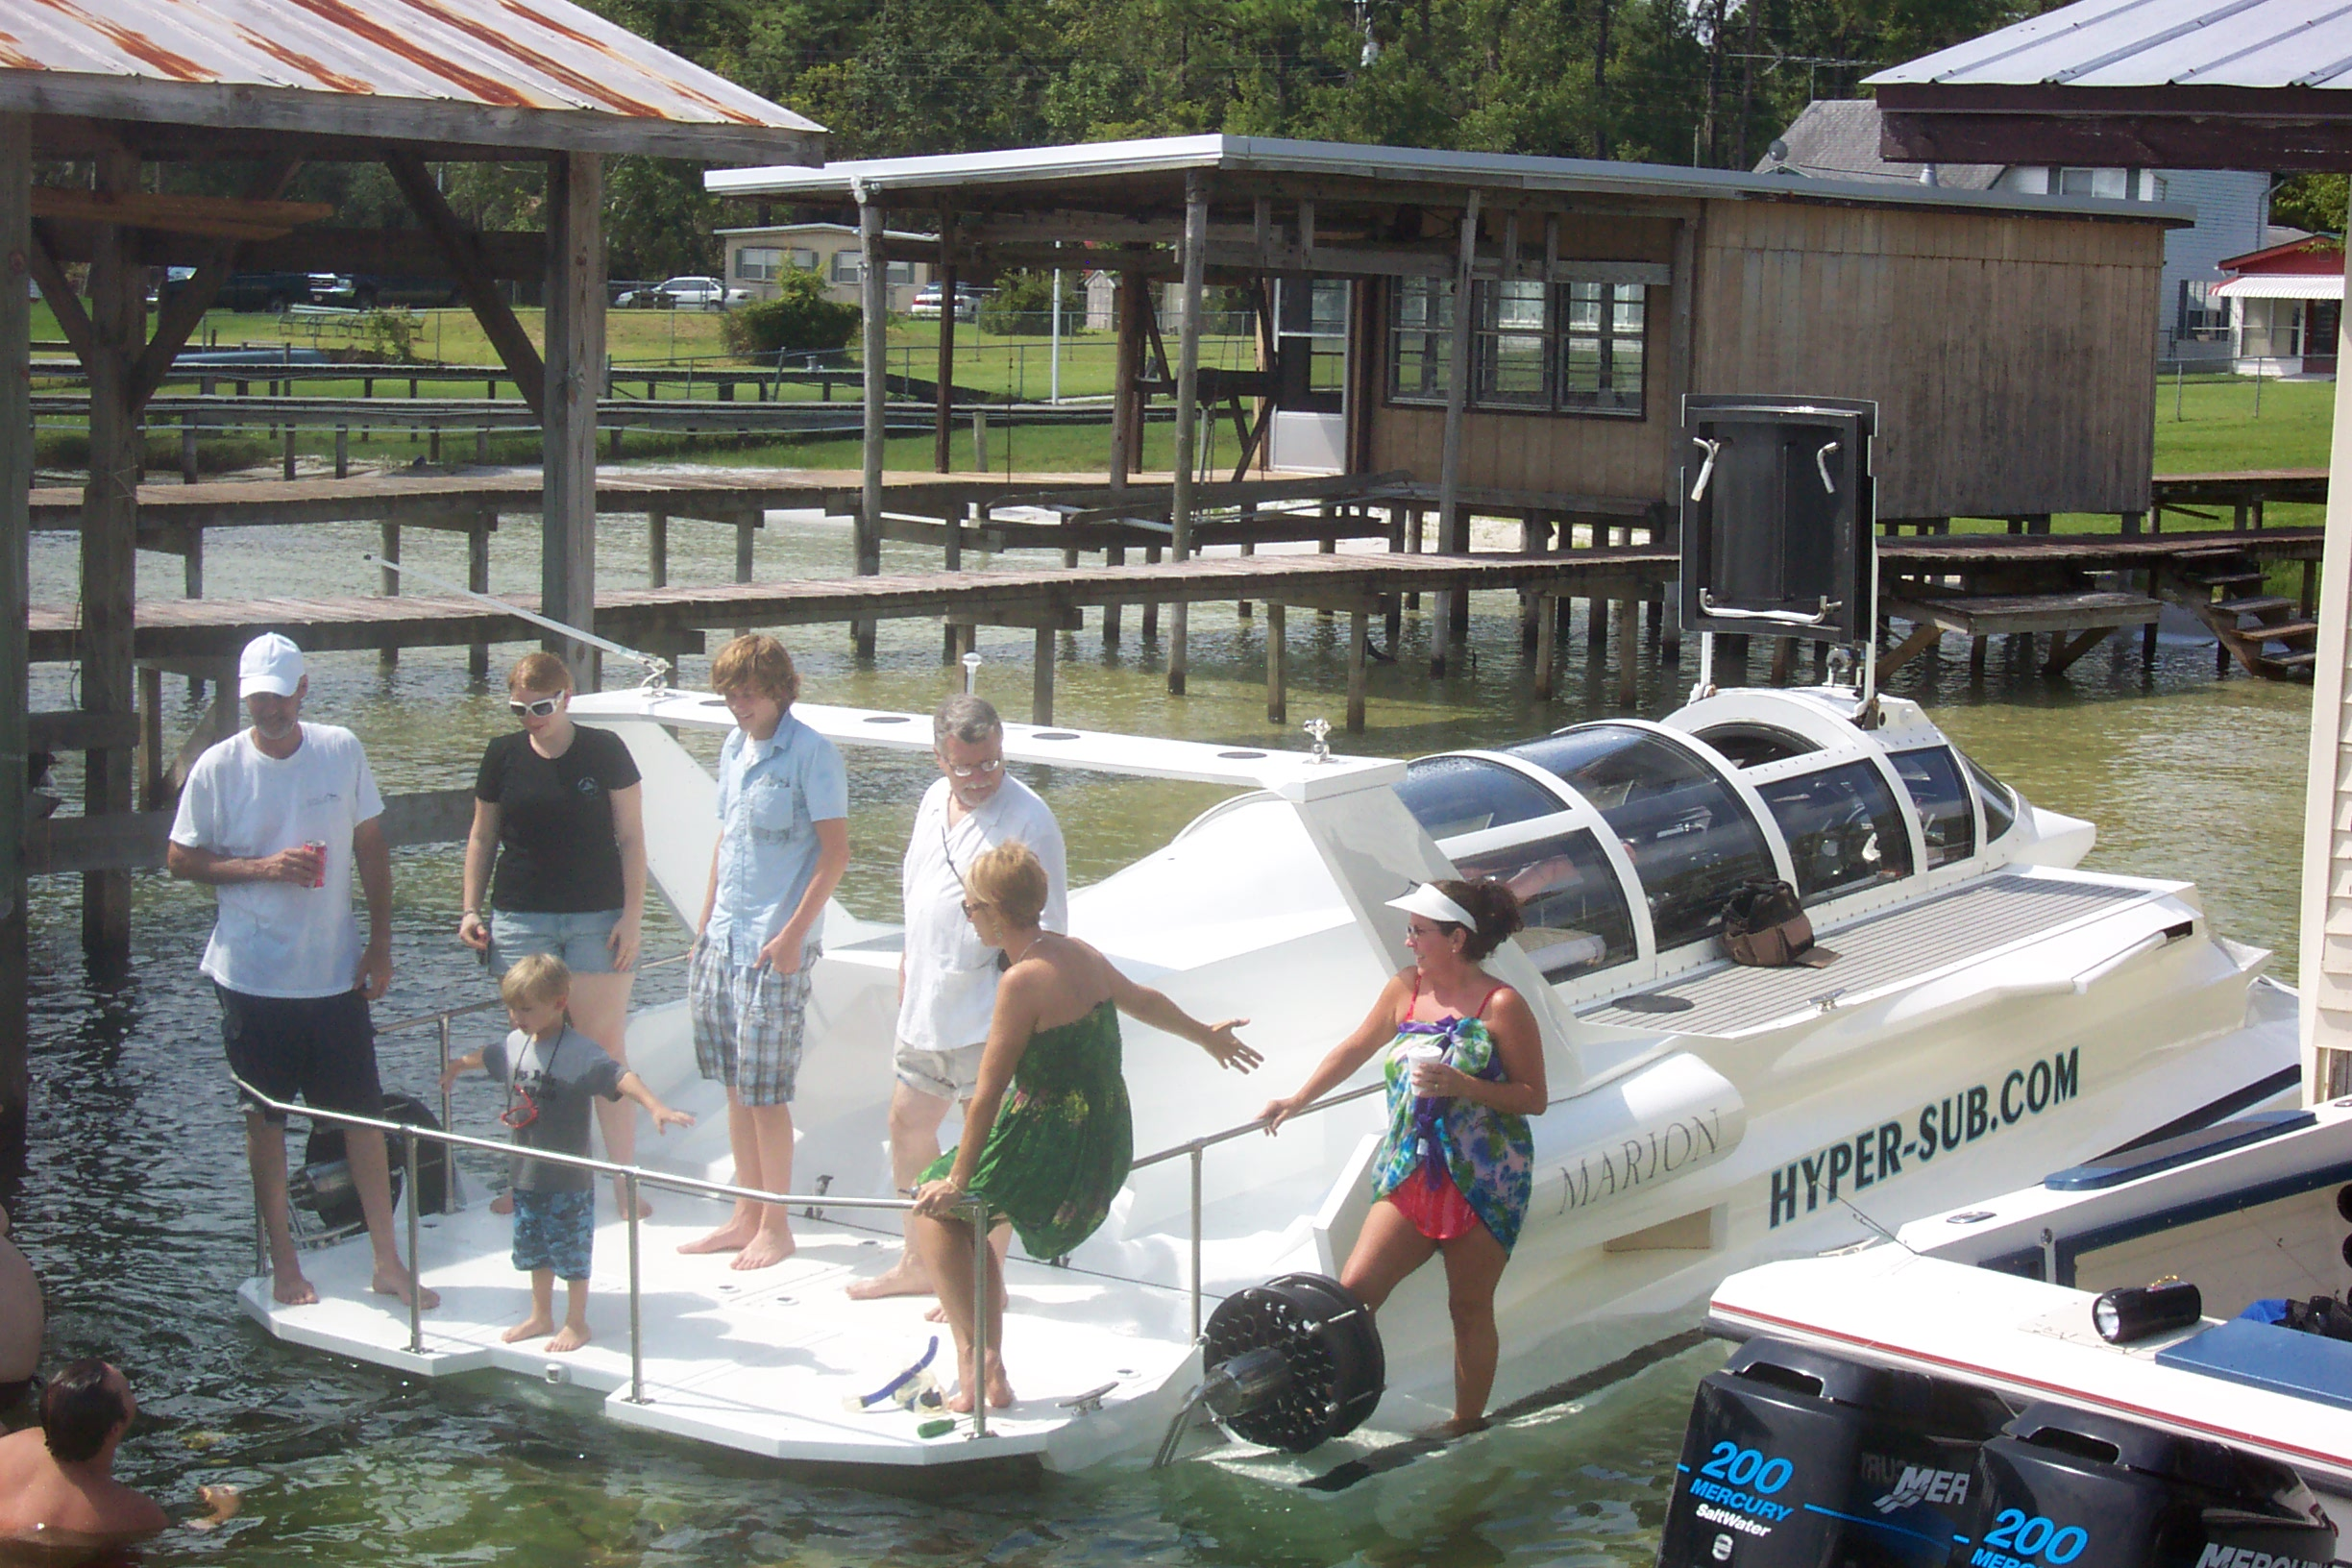 The Hyper-Sub can be docked or parked almost anywhere, just like any other speedboat. Chose the rear deck seating option to enjoy when using in surface craft mode.